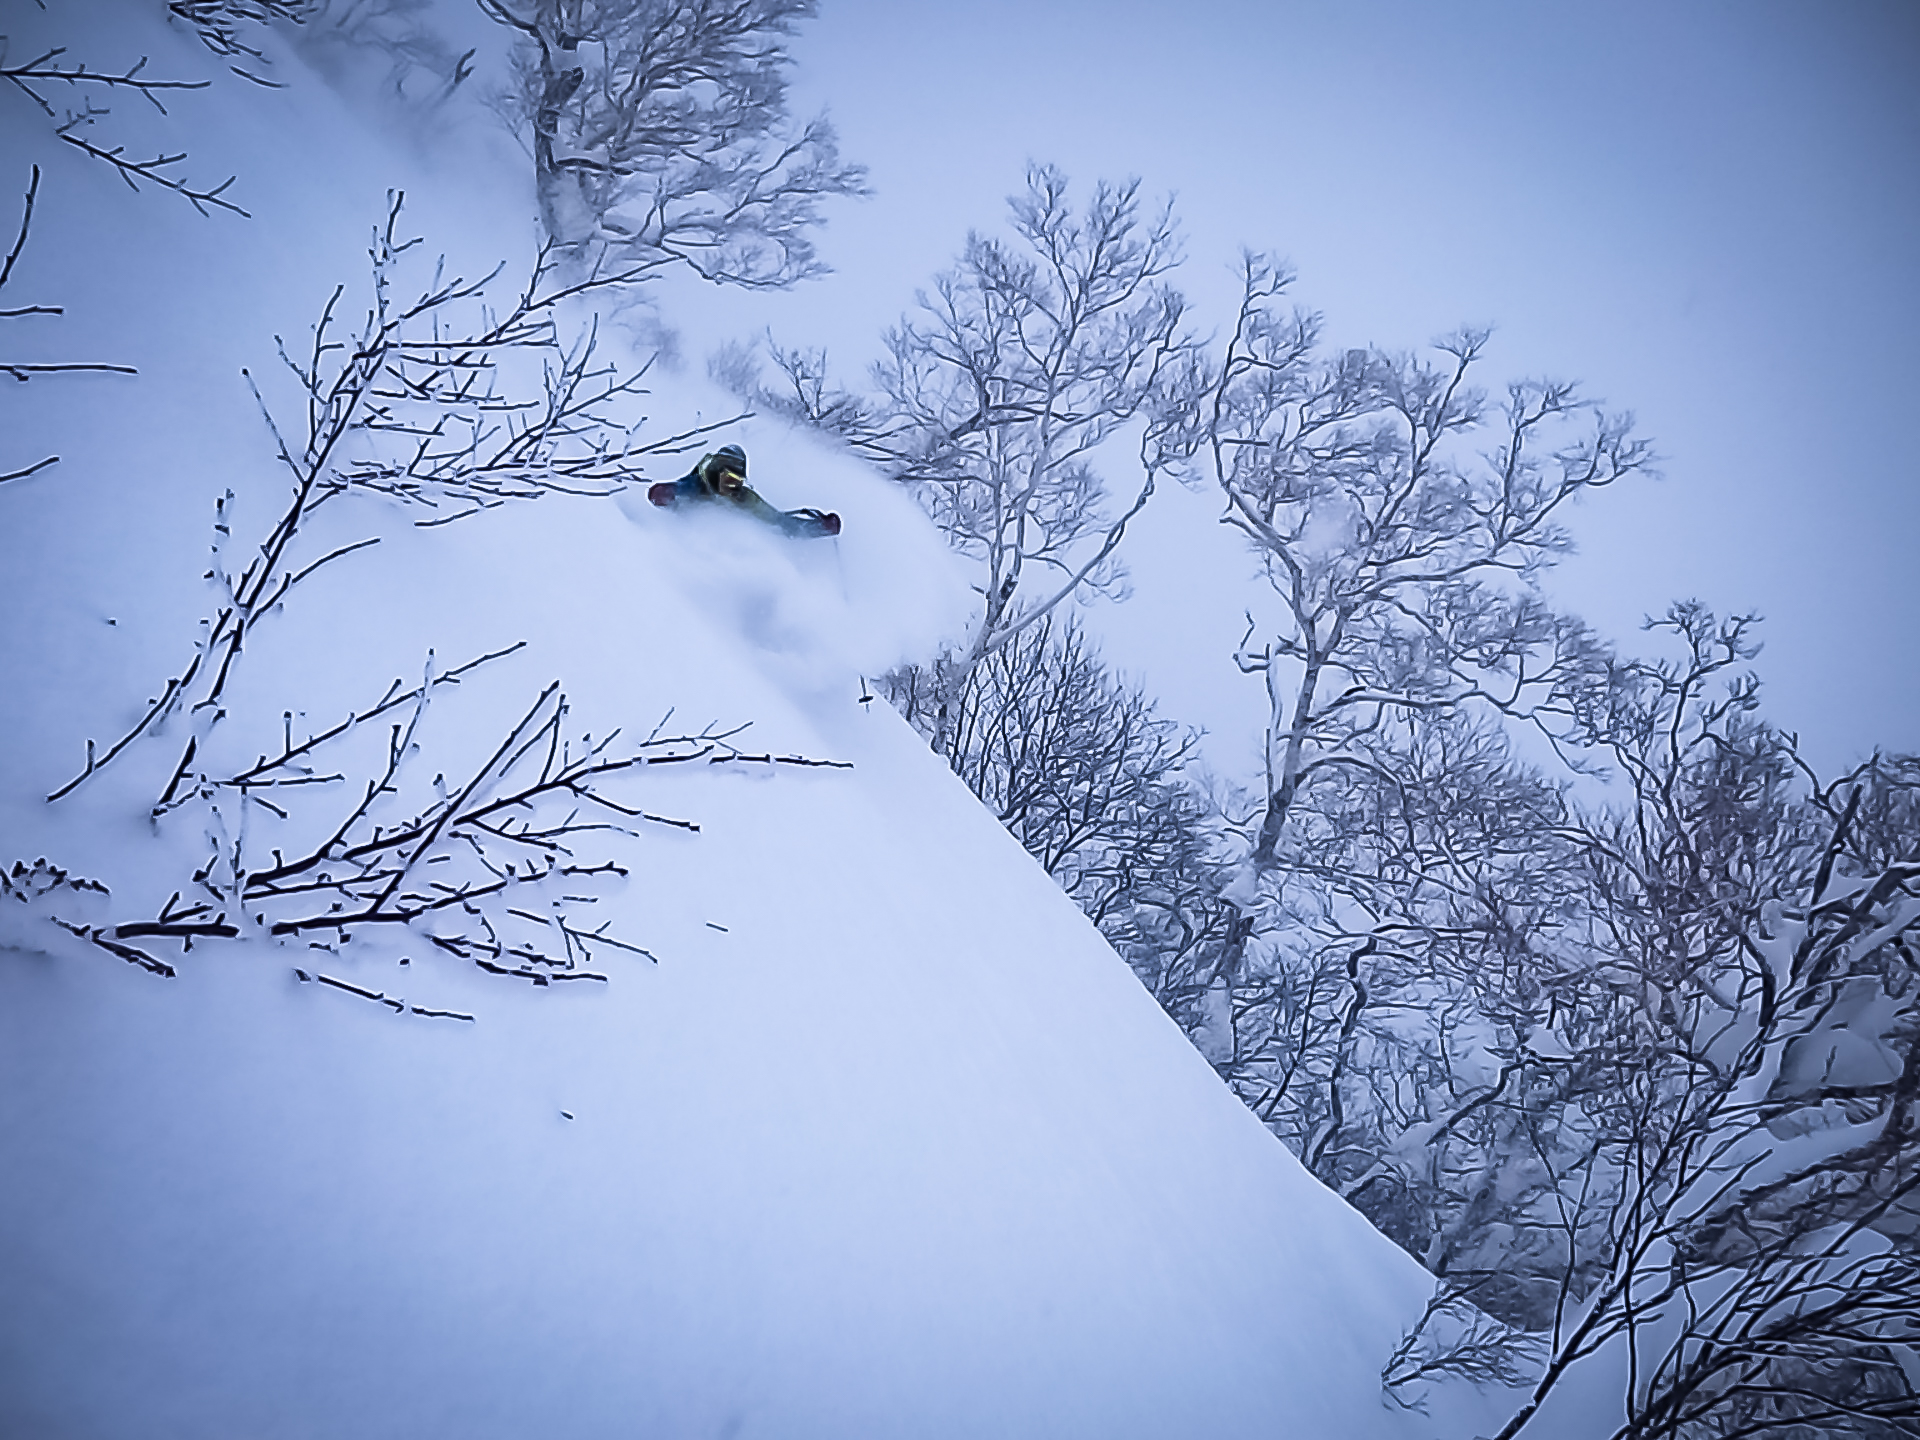 Backcountry skiing Japan